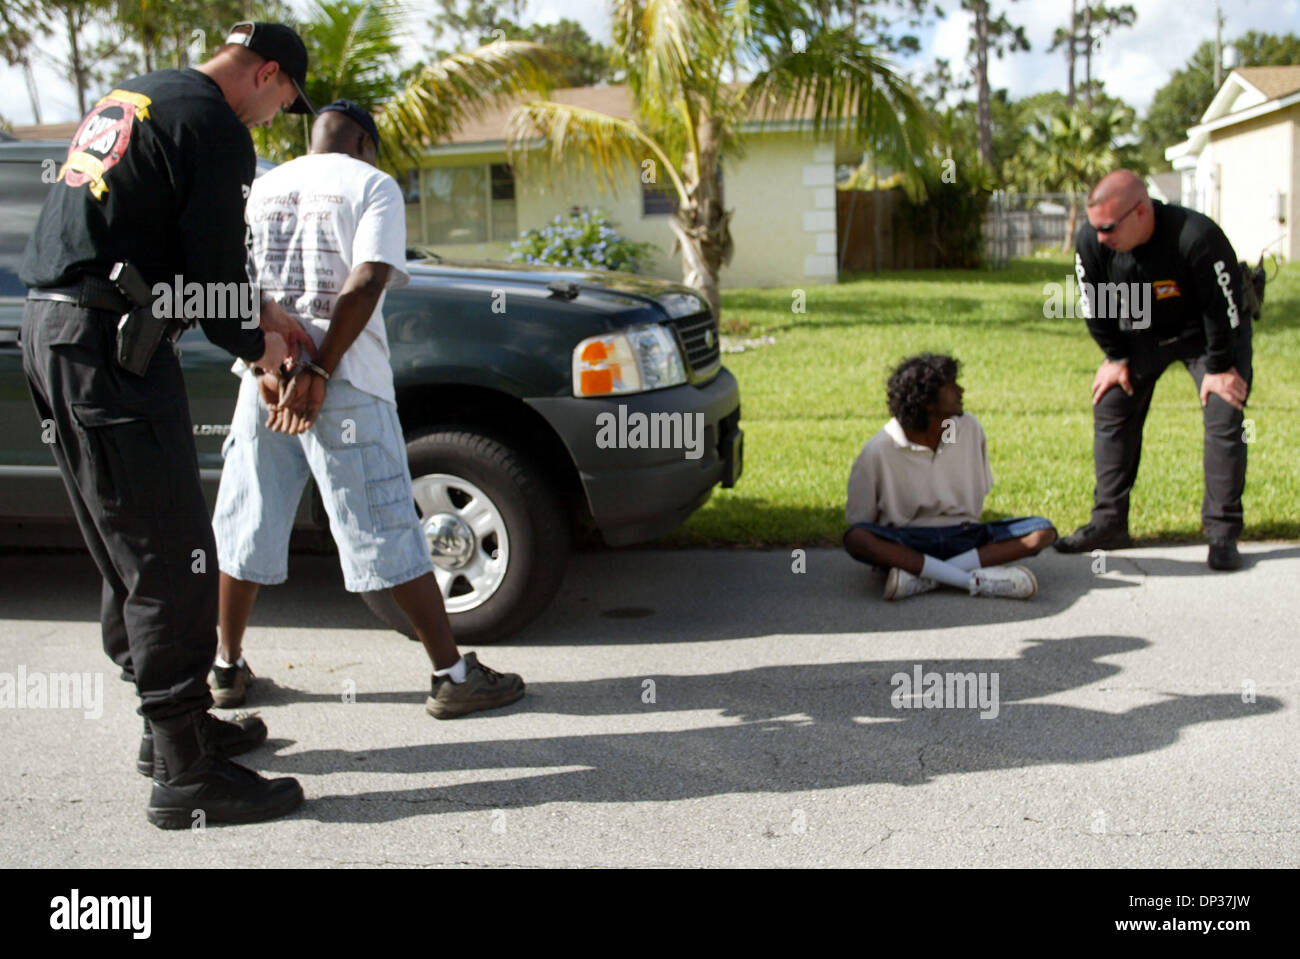 Jun 23, 2006; Port St. Lucie, FL, USA; This was the first mission of an anti-gang task force, which is comprised of members of the Port St. Lucie and Fort Pierce police departments and the St. Lucie County Sheriff's Office. All four suspects they sought were arrested. Mandatory Credit: Photo by Vada Mossavat/Palm Beach Post/ZUMA Press. (©) Copyright 2006 by Palm Beach Post - Stock Image